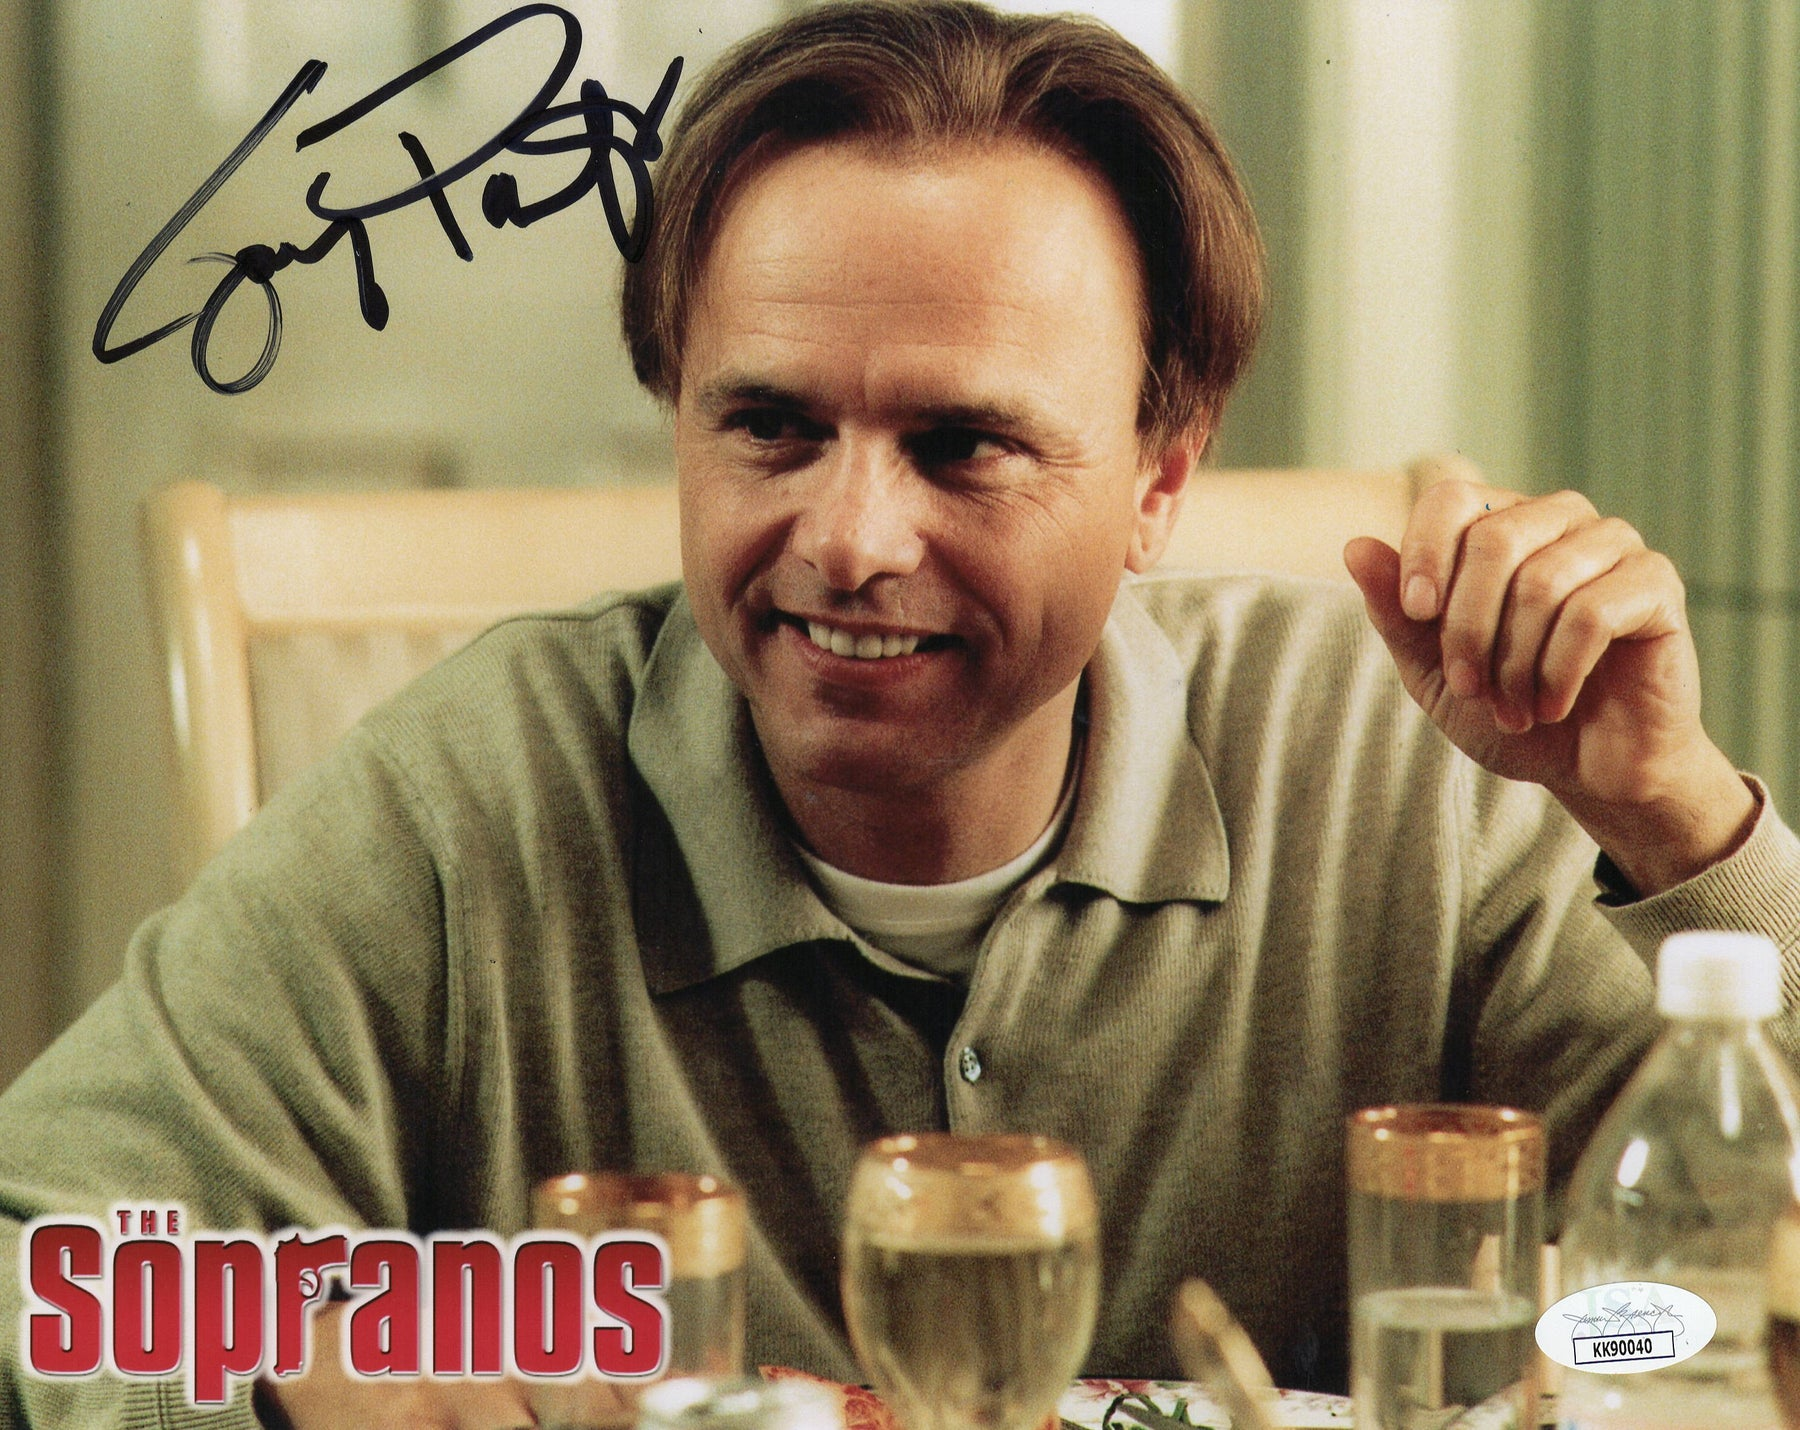 SPECIAL Joe Pantoliano Autograph 8x10 Photo The Sopranos Ralph Cifaretto Signed JSA COA